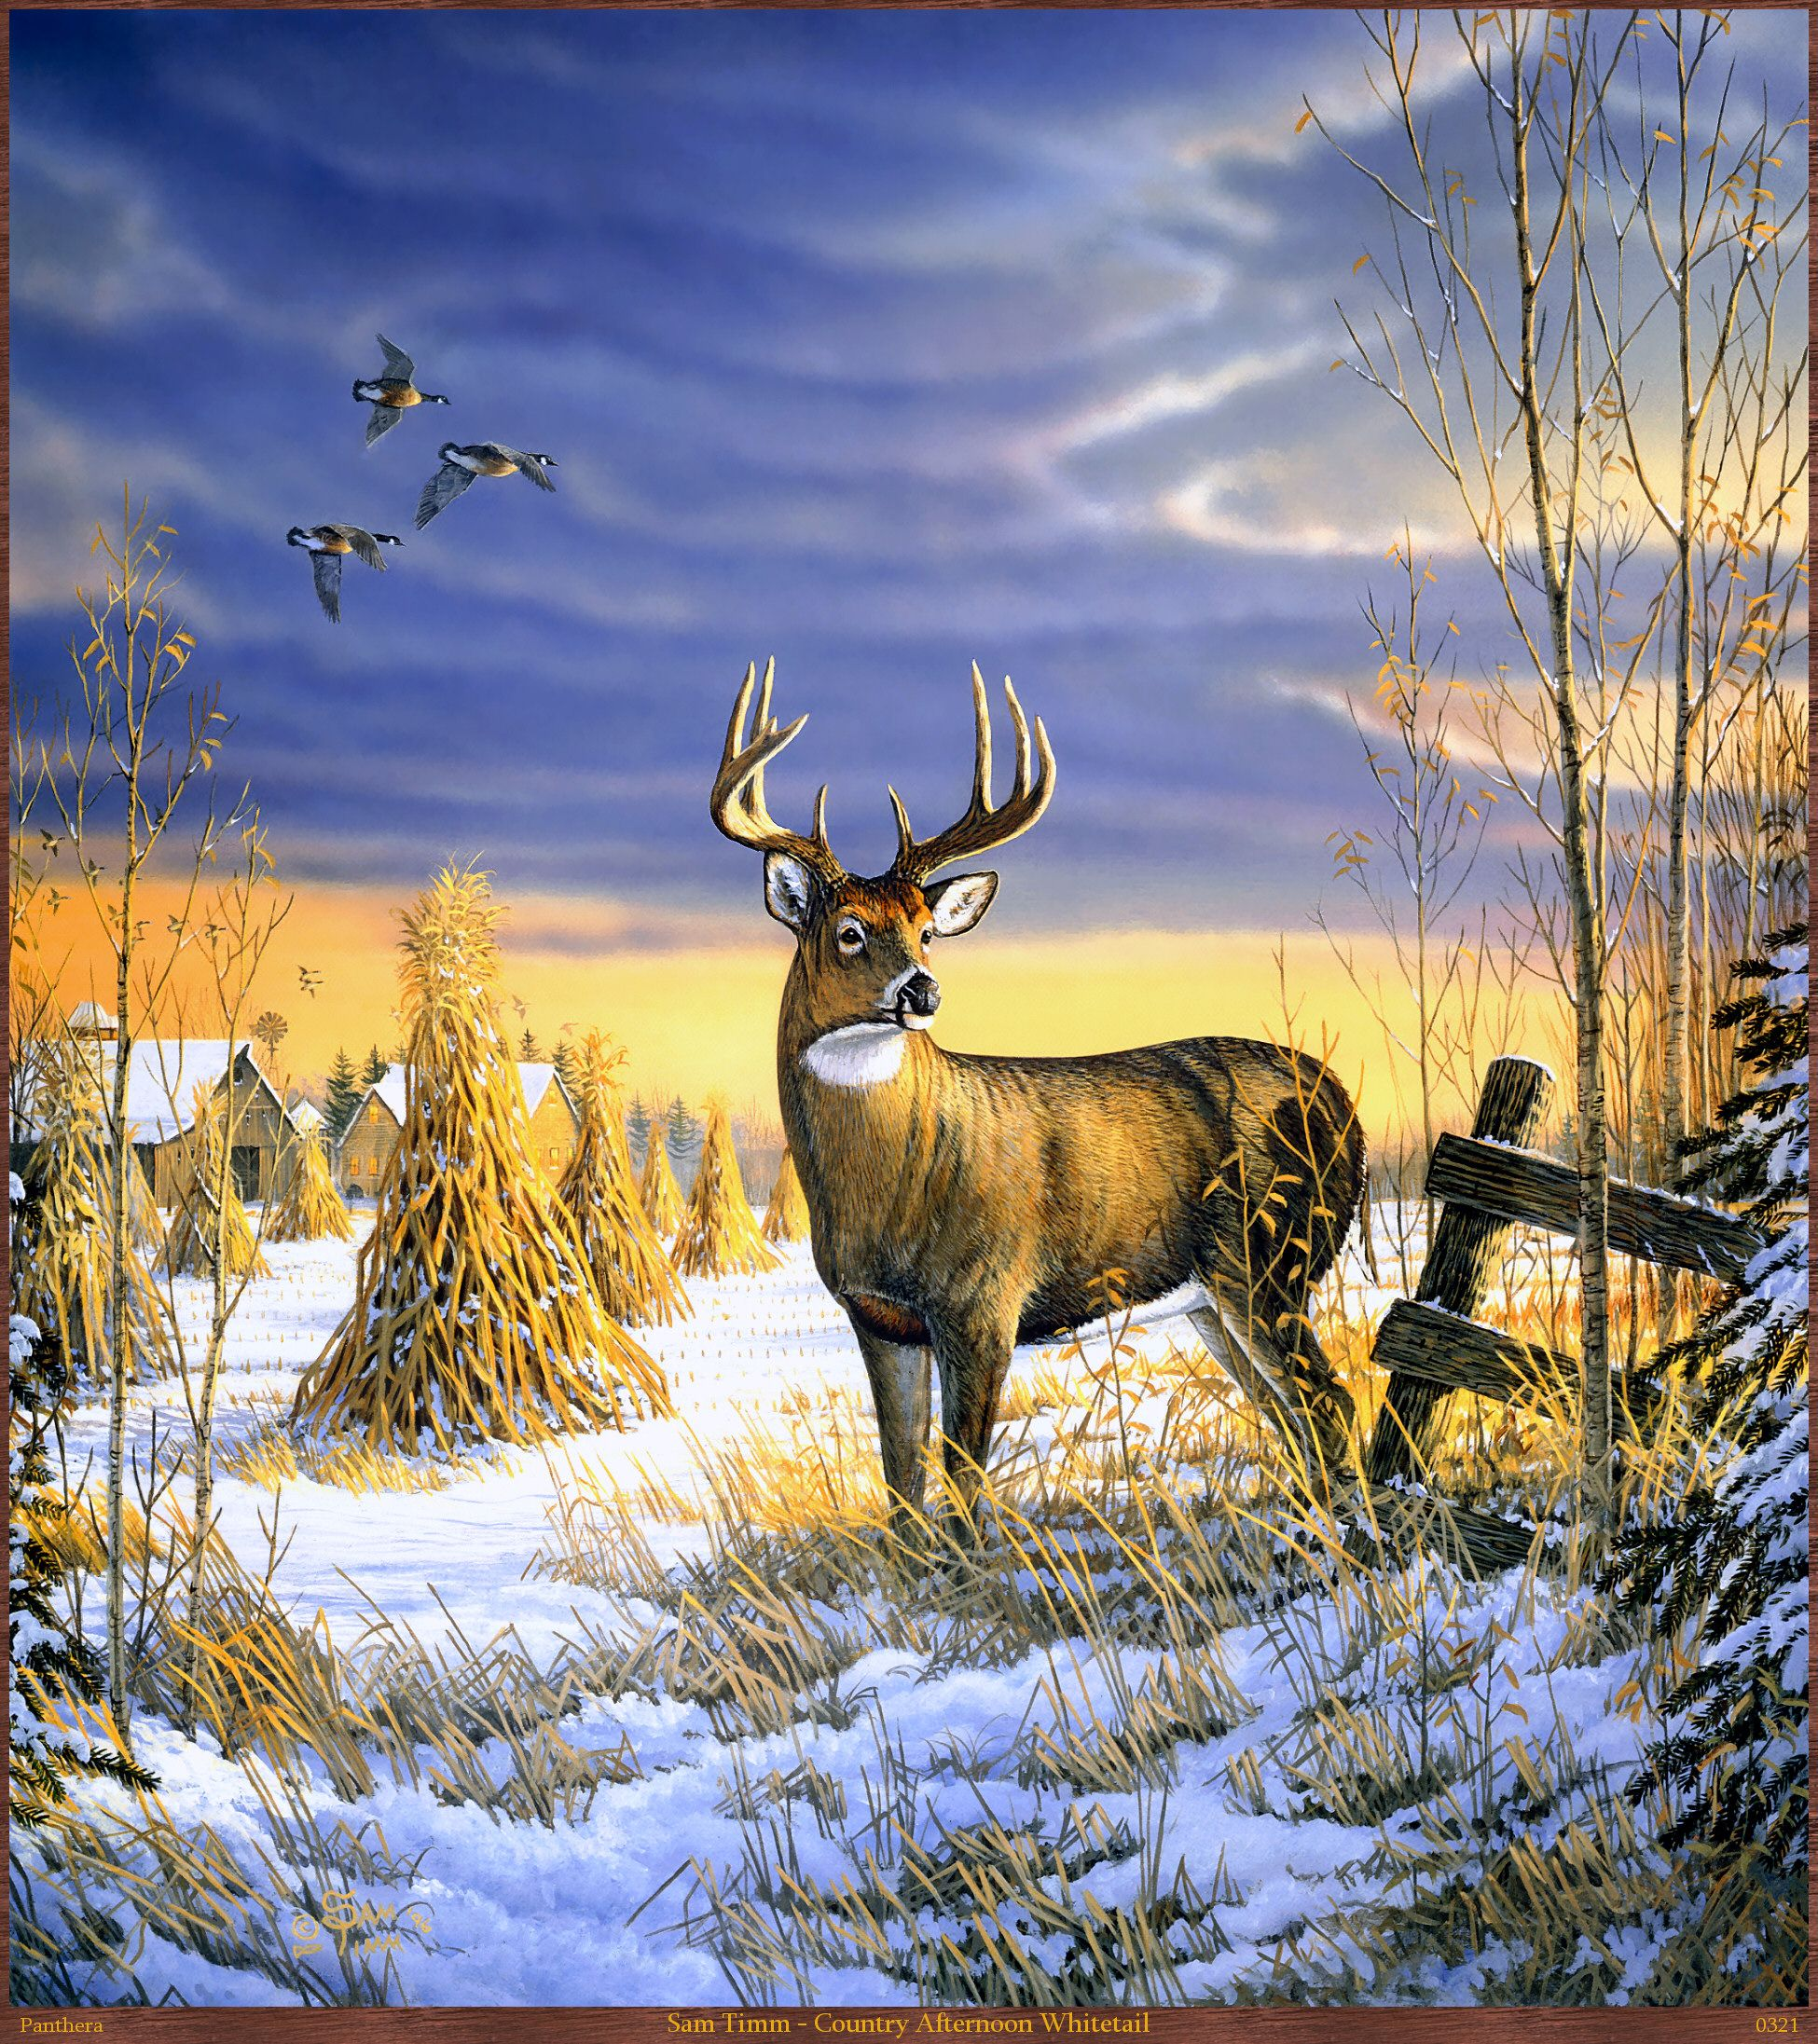 "http://animal.memozee.com/Arch07/1307710091.jpg ""Country Afternoon Whitetail"" by Sam Timm"